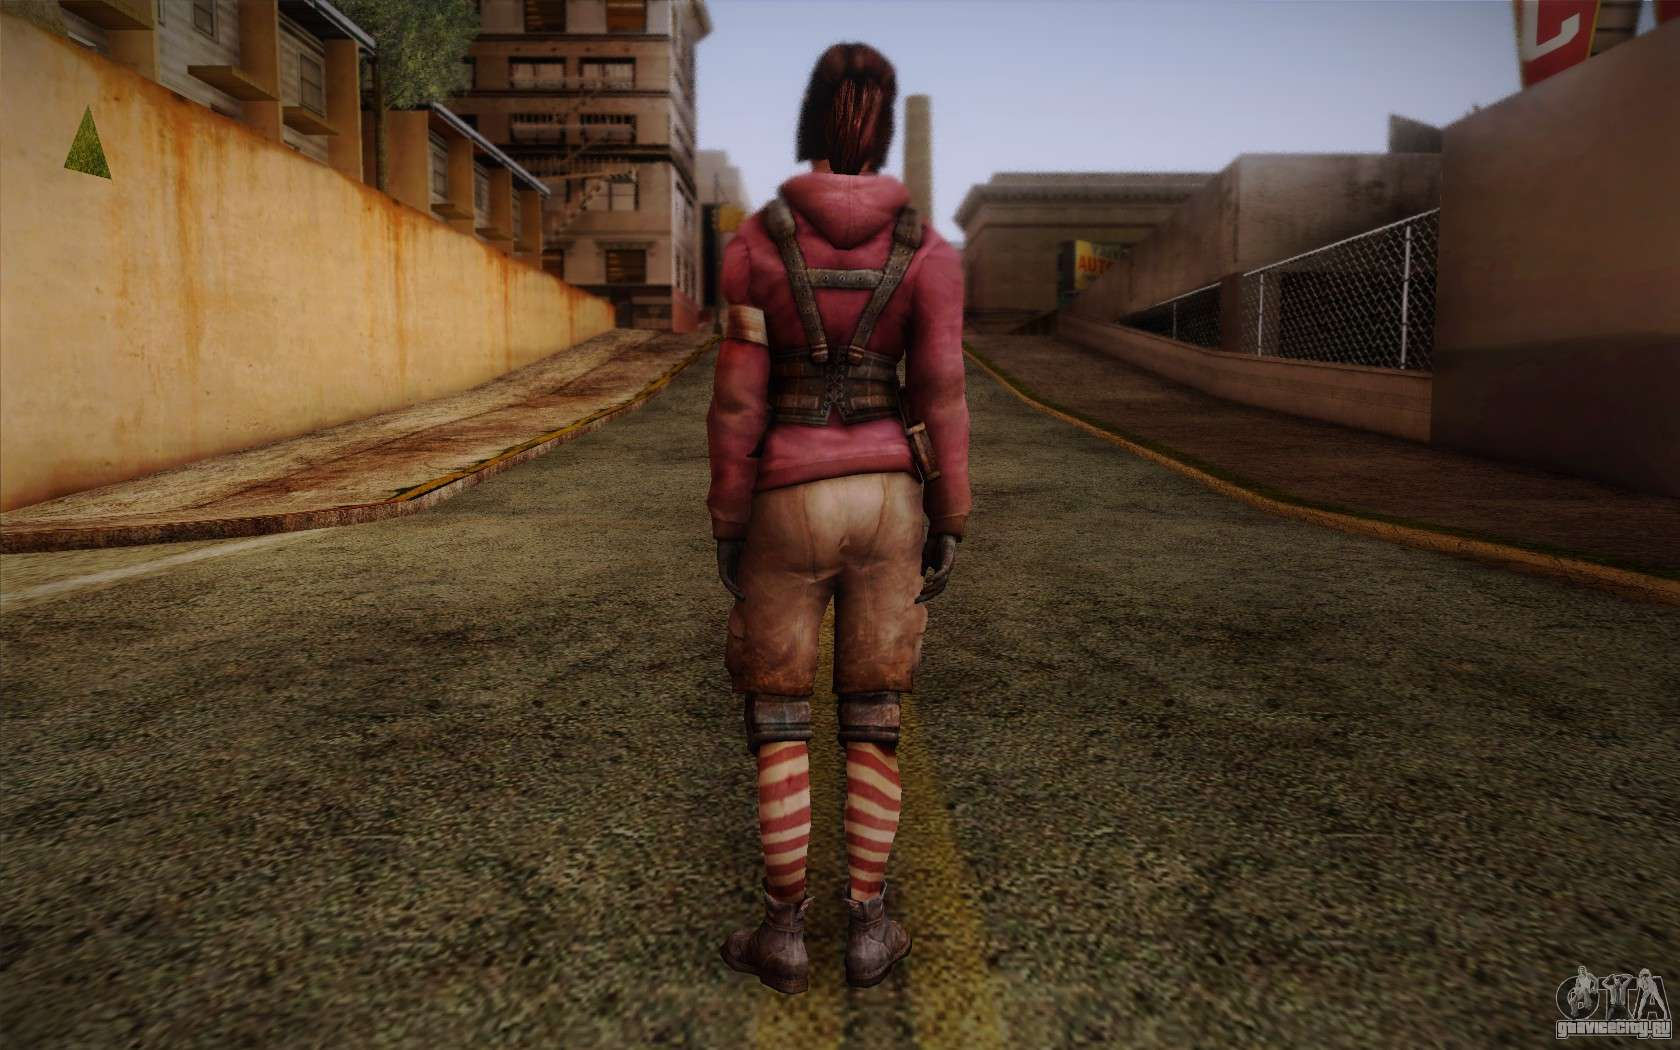 L4d zoey hot sex photos